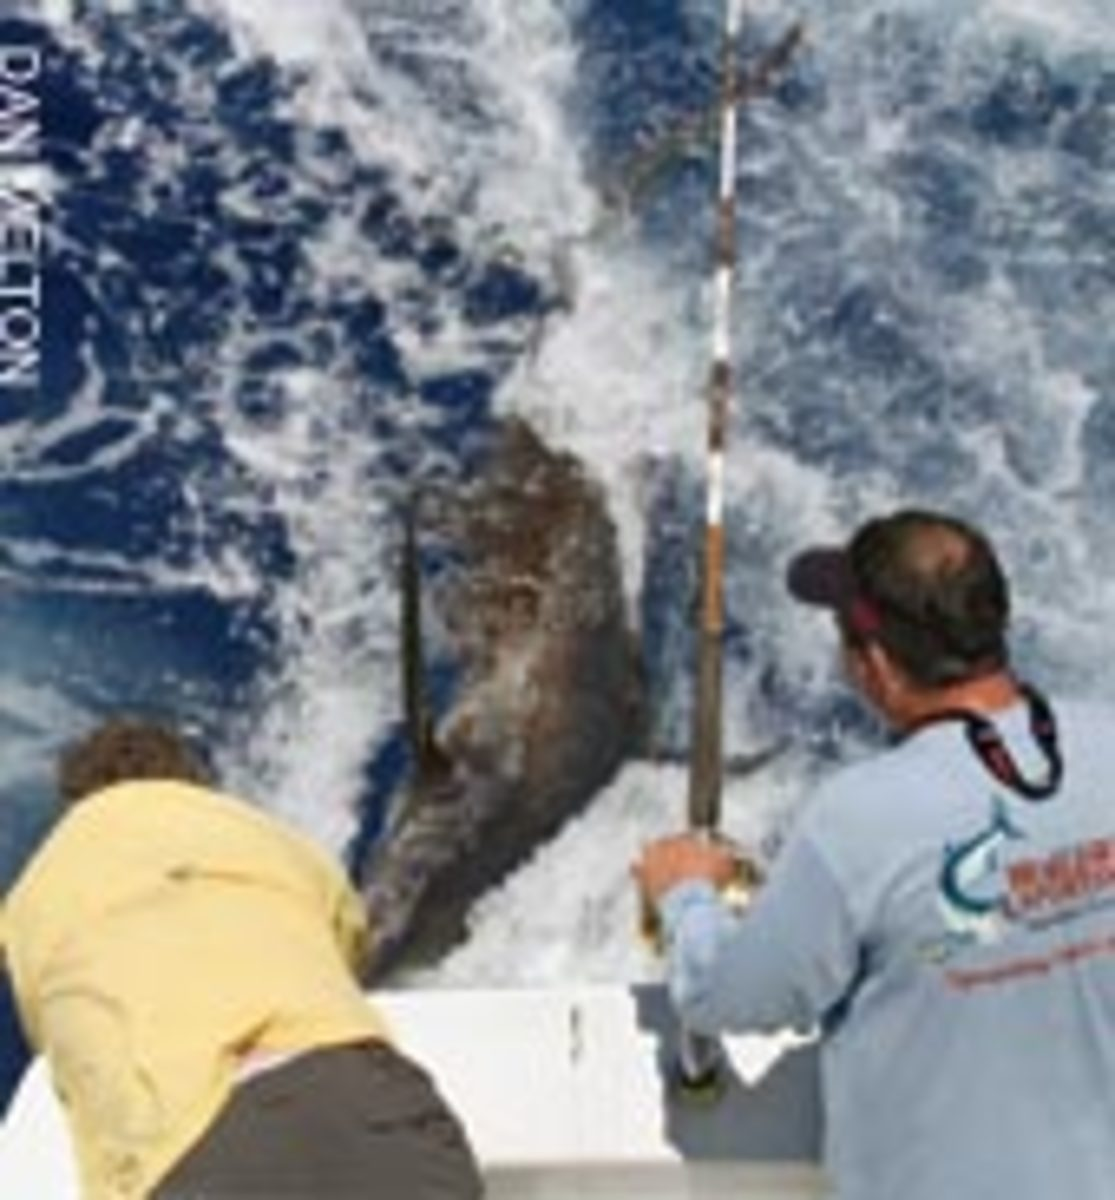 A blue marlin, estimated to weigh about 400 pounds, is released by the Contingent Sea crew and owner Clayton Syfrett of Panama City, Fla.